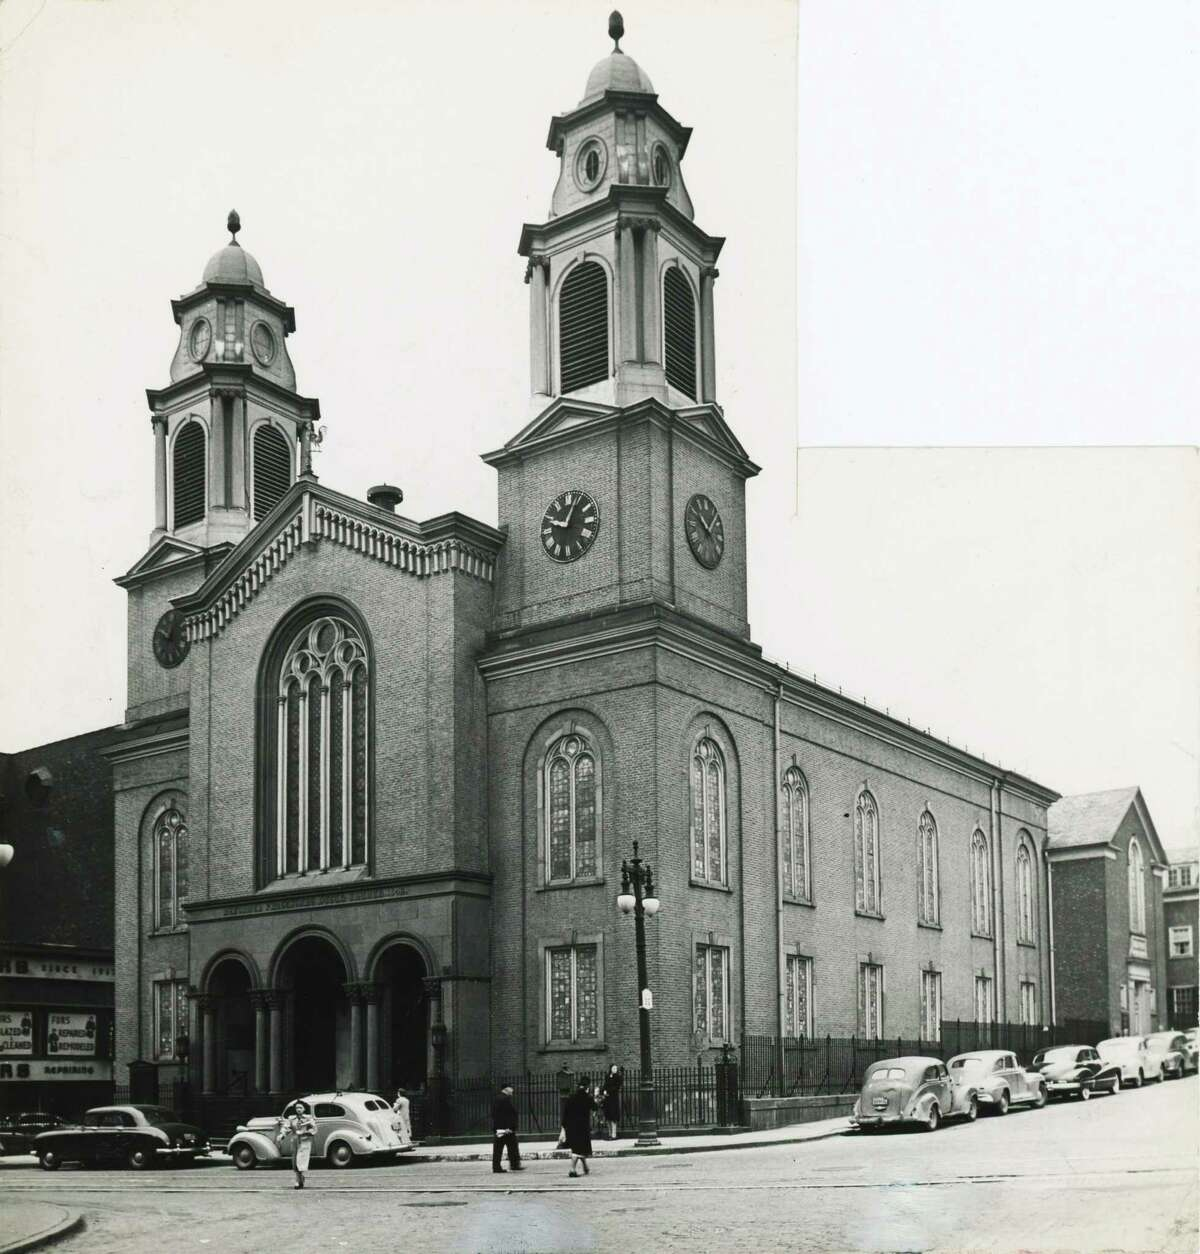 FIRST CHURCH IN ALBANY (1798) : Style: Federal. Built by Phillip Hooker, it has stayed true to itself (and its congregation) as neighbors around it have changed. This photos shows the church as it was in 1949. (Times Union Archive)